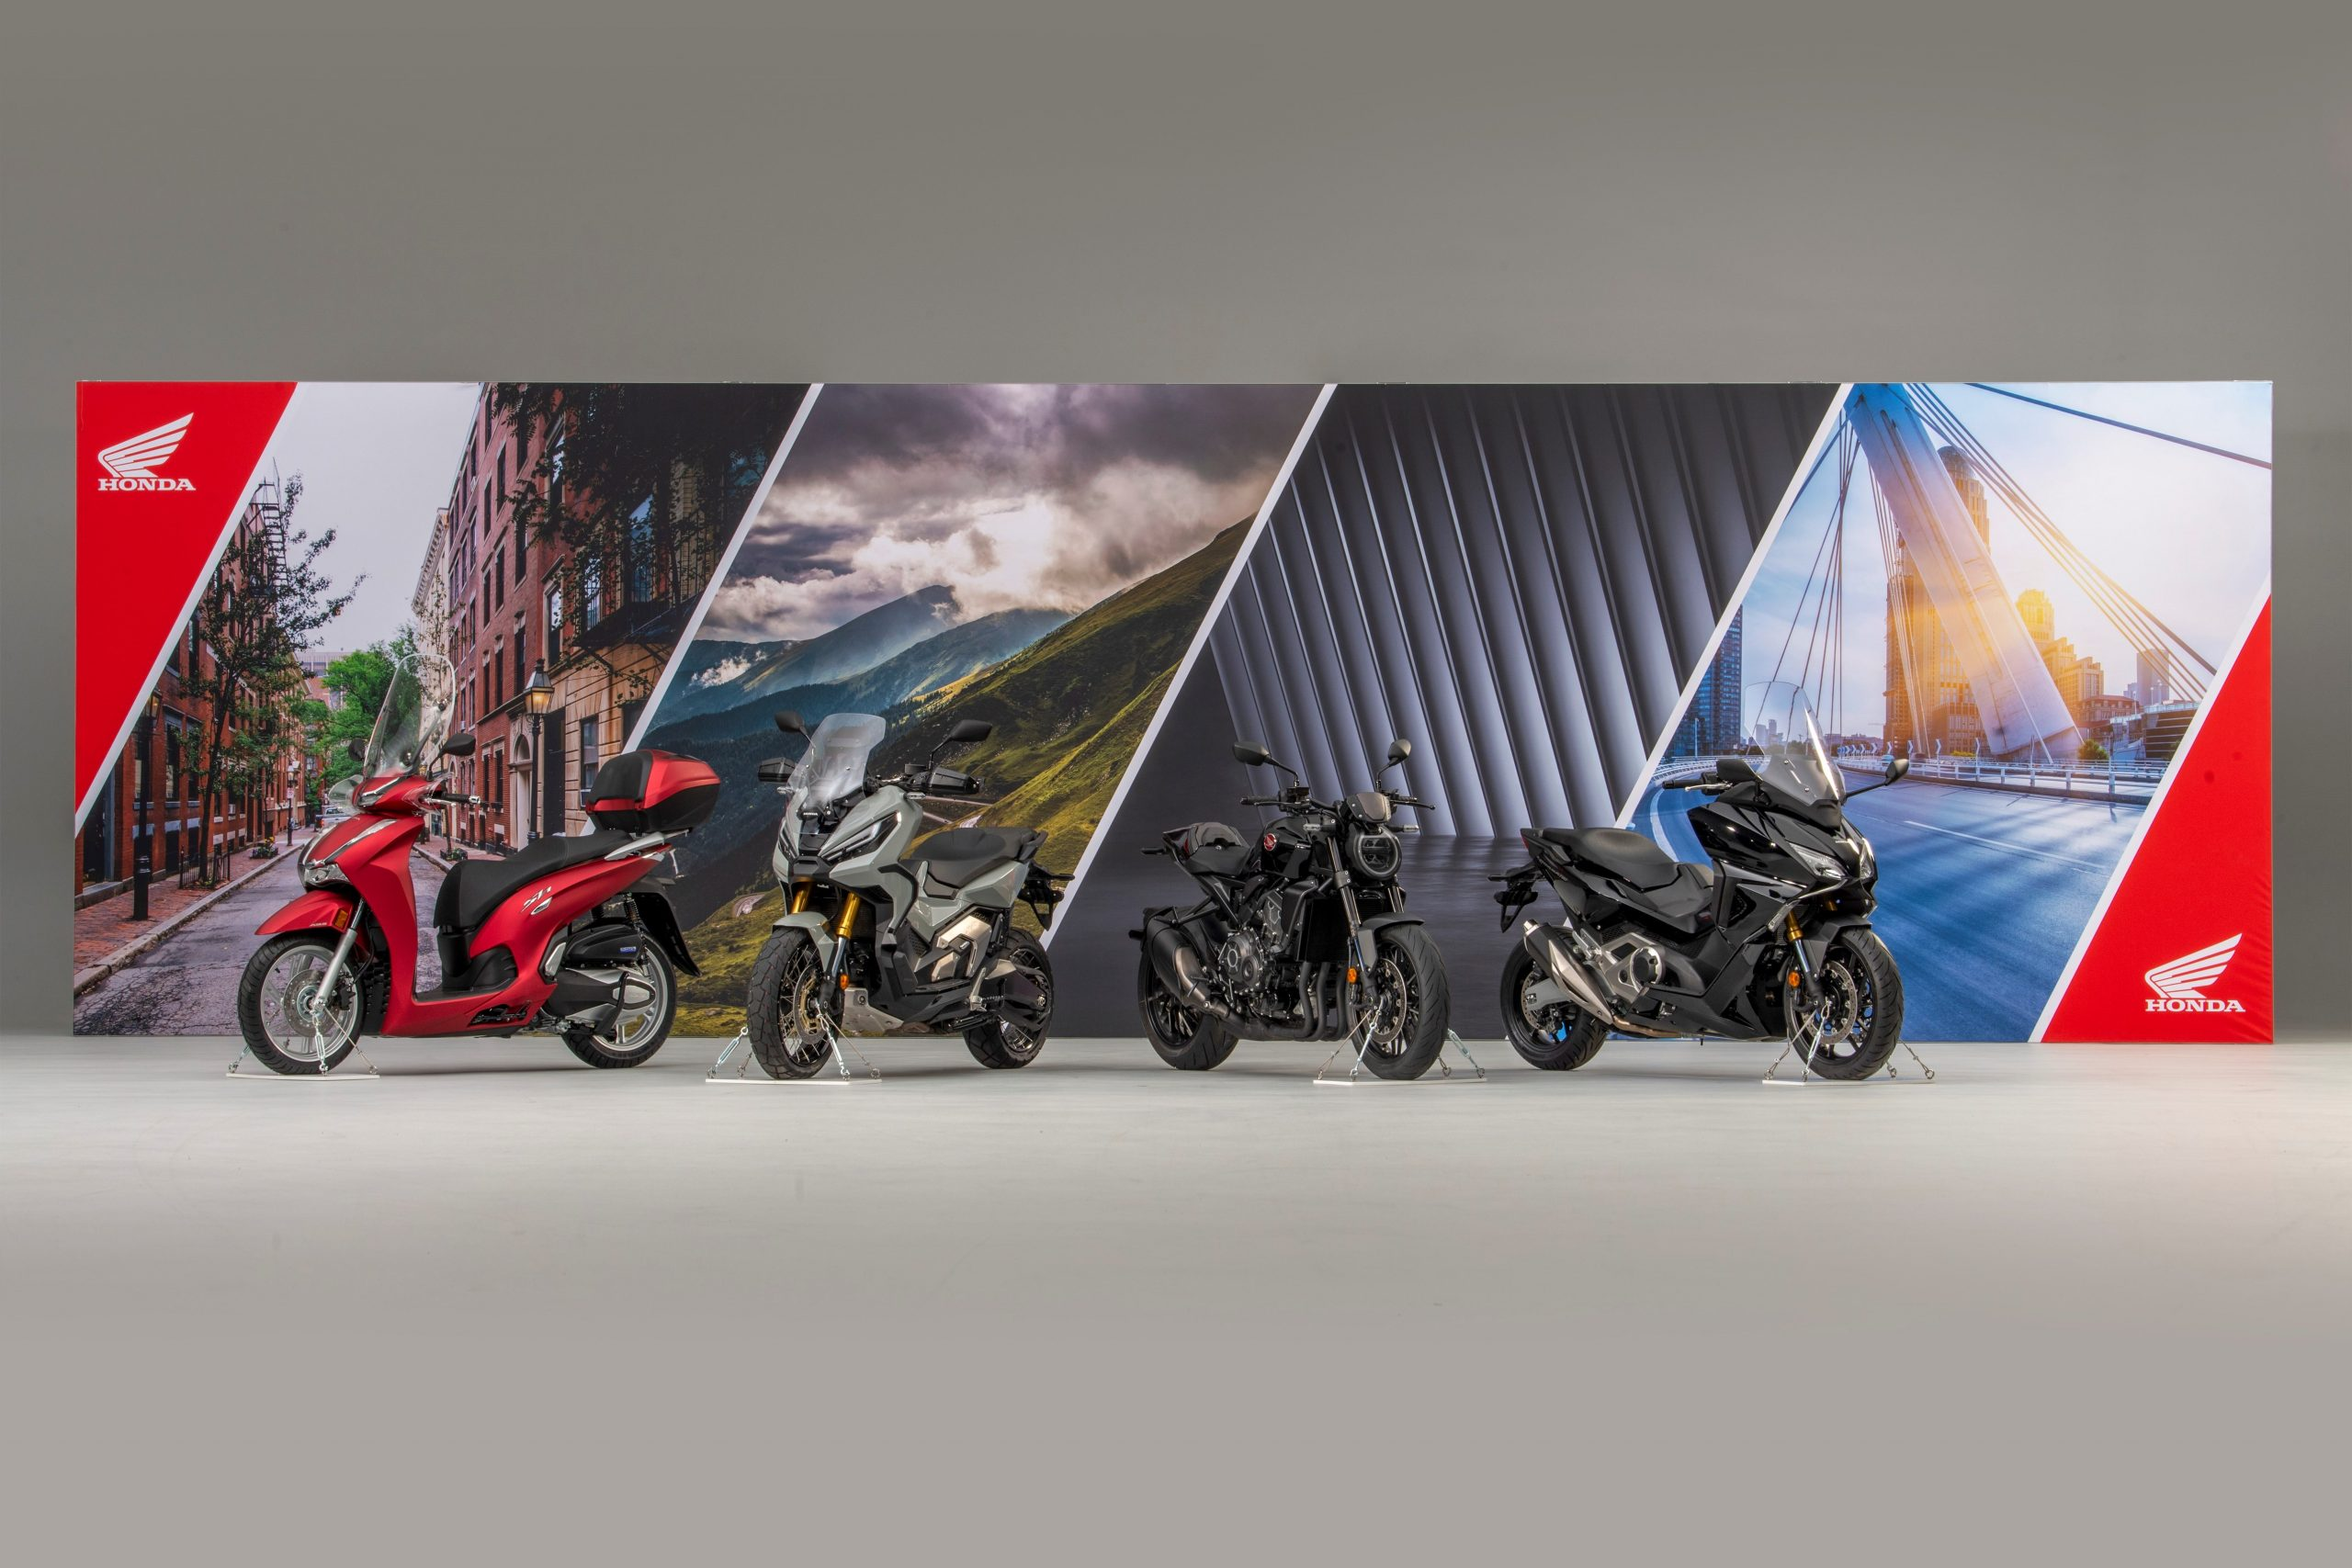 313703 Honda Announce Seven More Additions To Its Comprehensive 2021 European Scaled